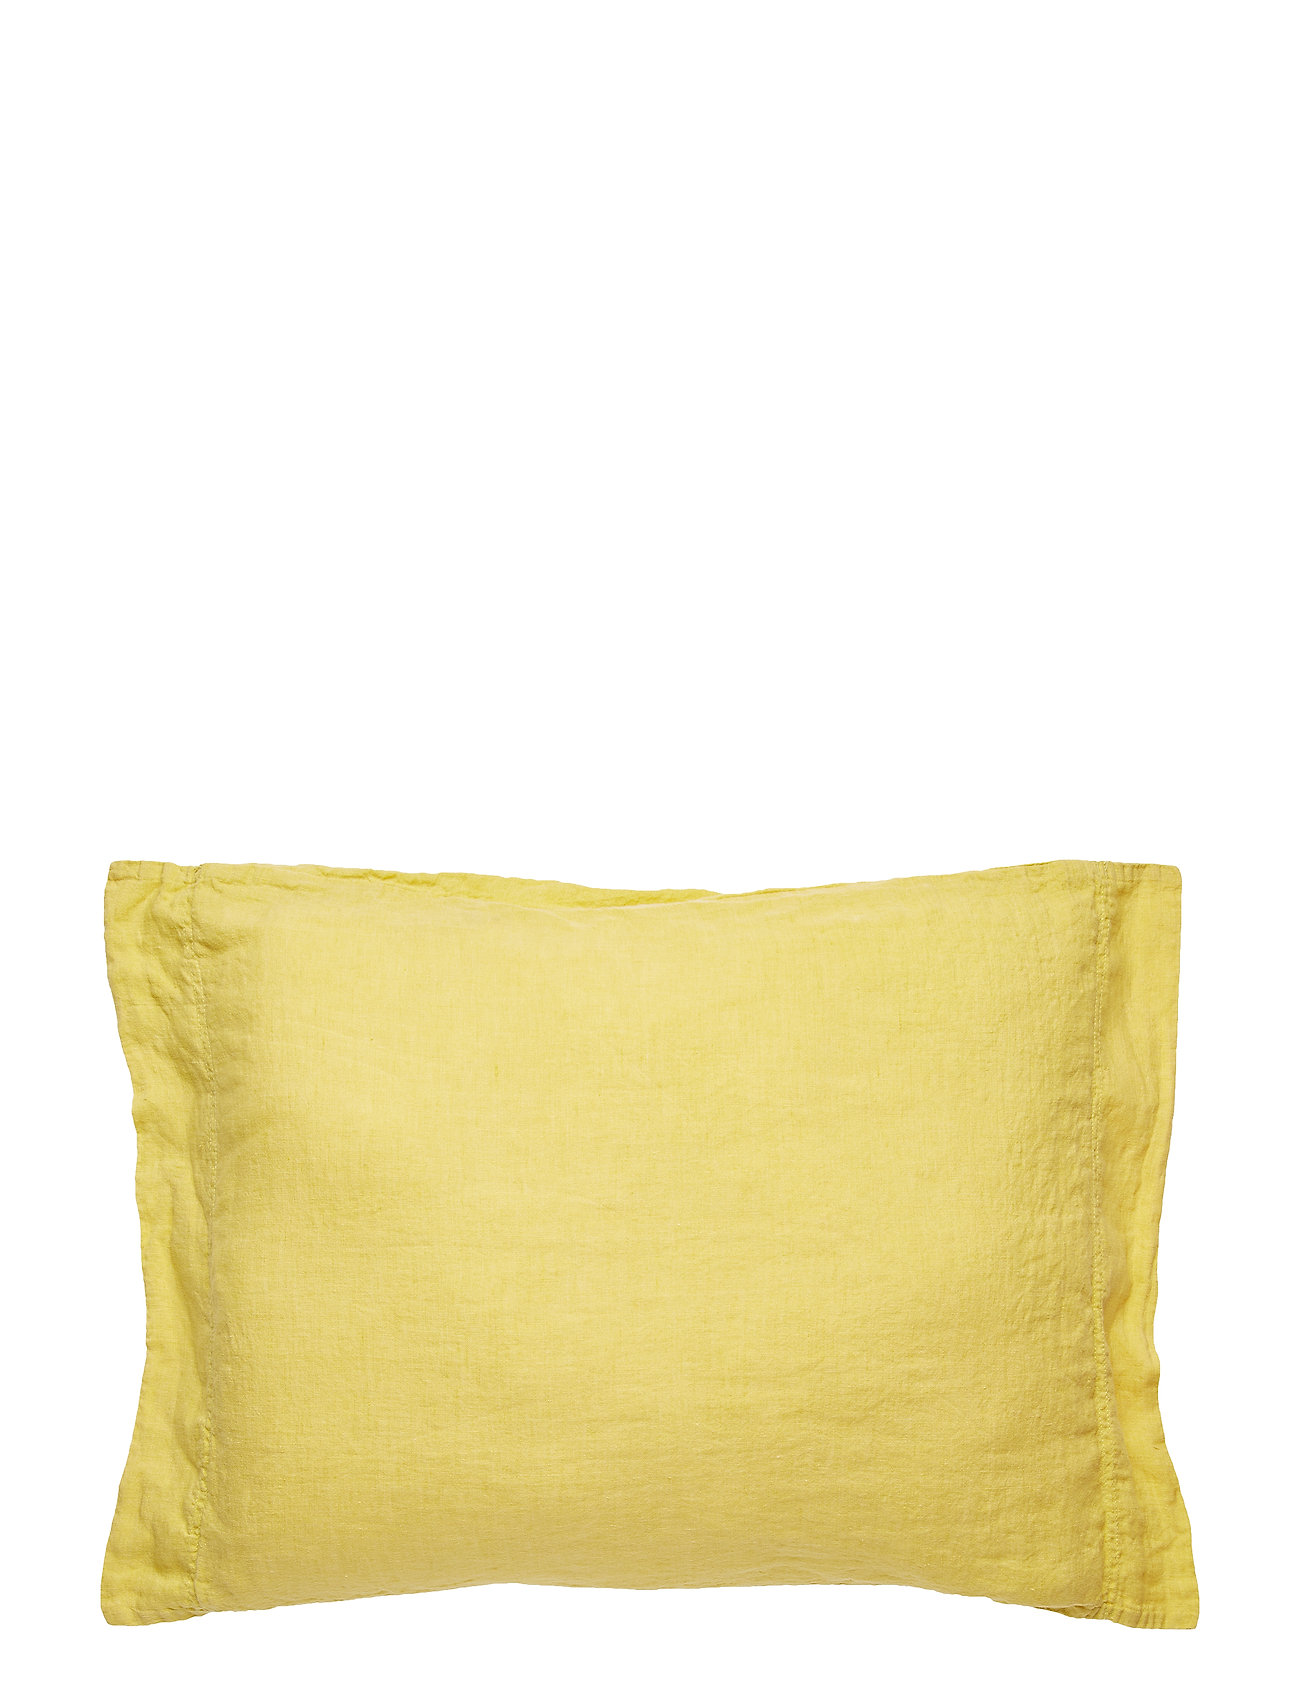 Dirty Linen Animeaux Head Pillow case - SUNNY SIDE